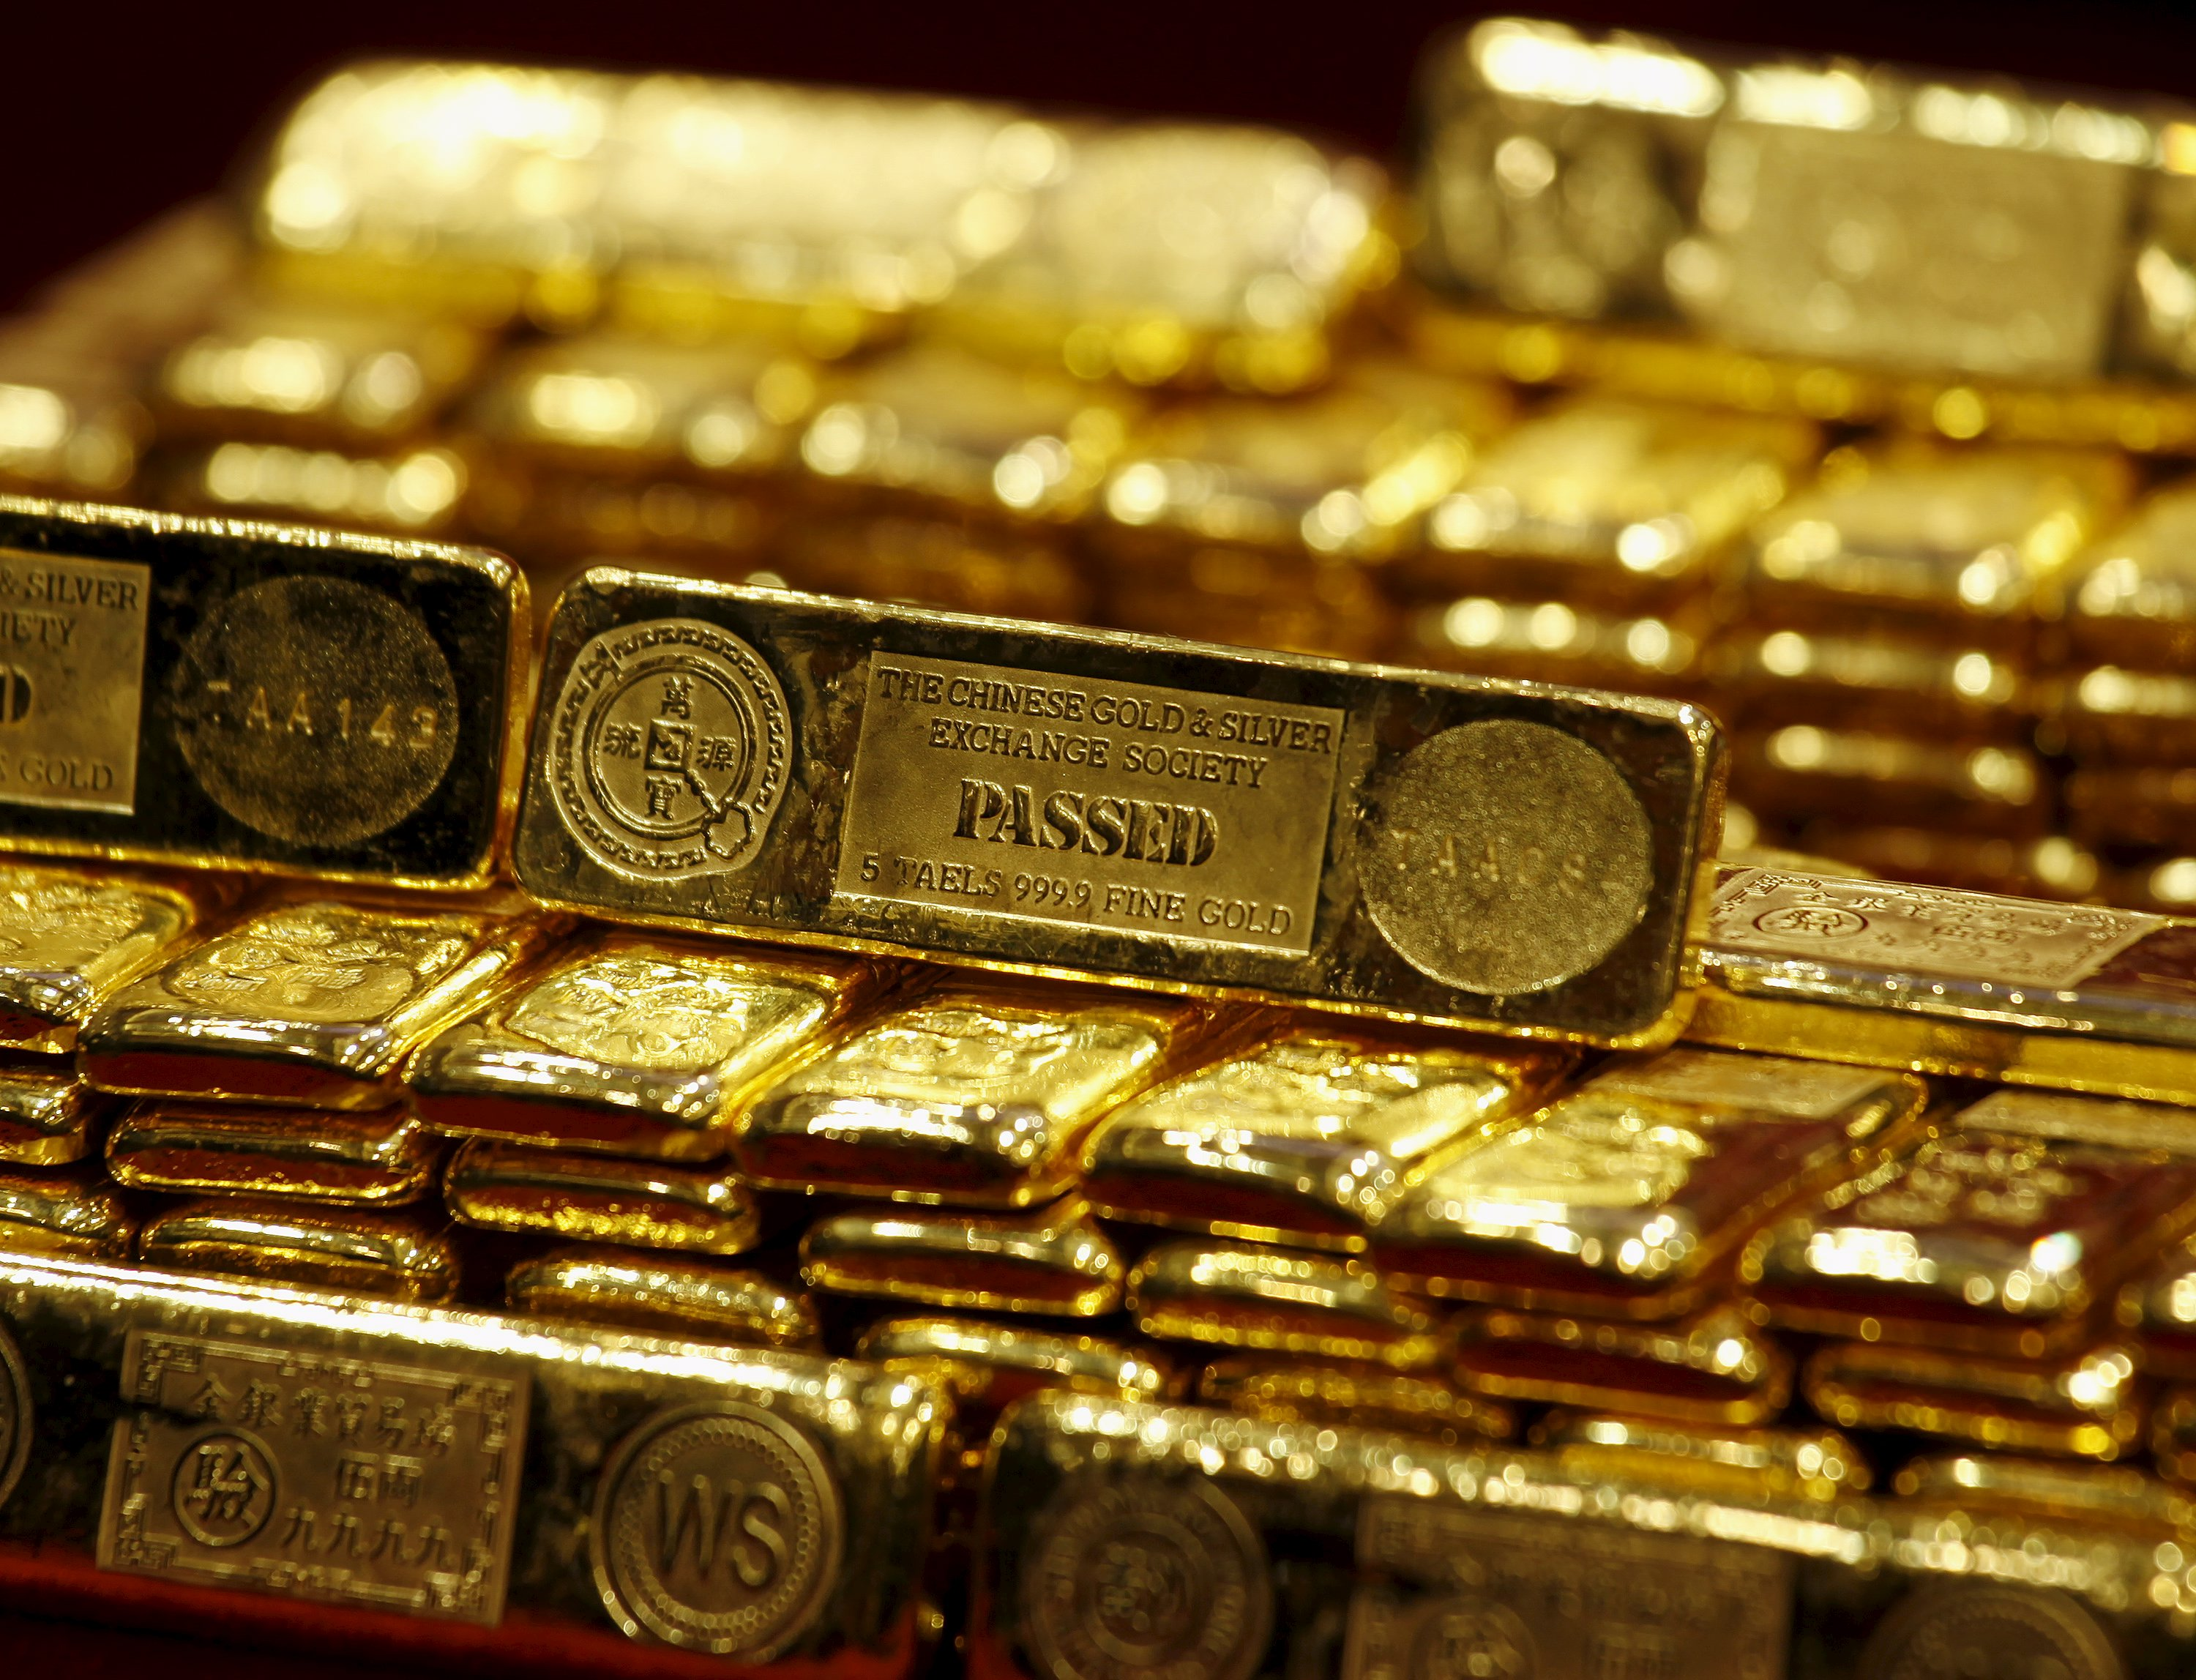 New five-tael 24K gold bars, issued by the Chinese Gold and Silver Exchange Society, Hong Kong's major gold and silver exchange, are introduced during the first trading day after the Chinese New Year holidays in Hong Kong in this February 14, 2013 file photo.  REUTERS/Bobby Yip/Files